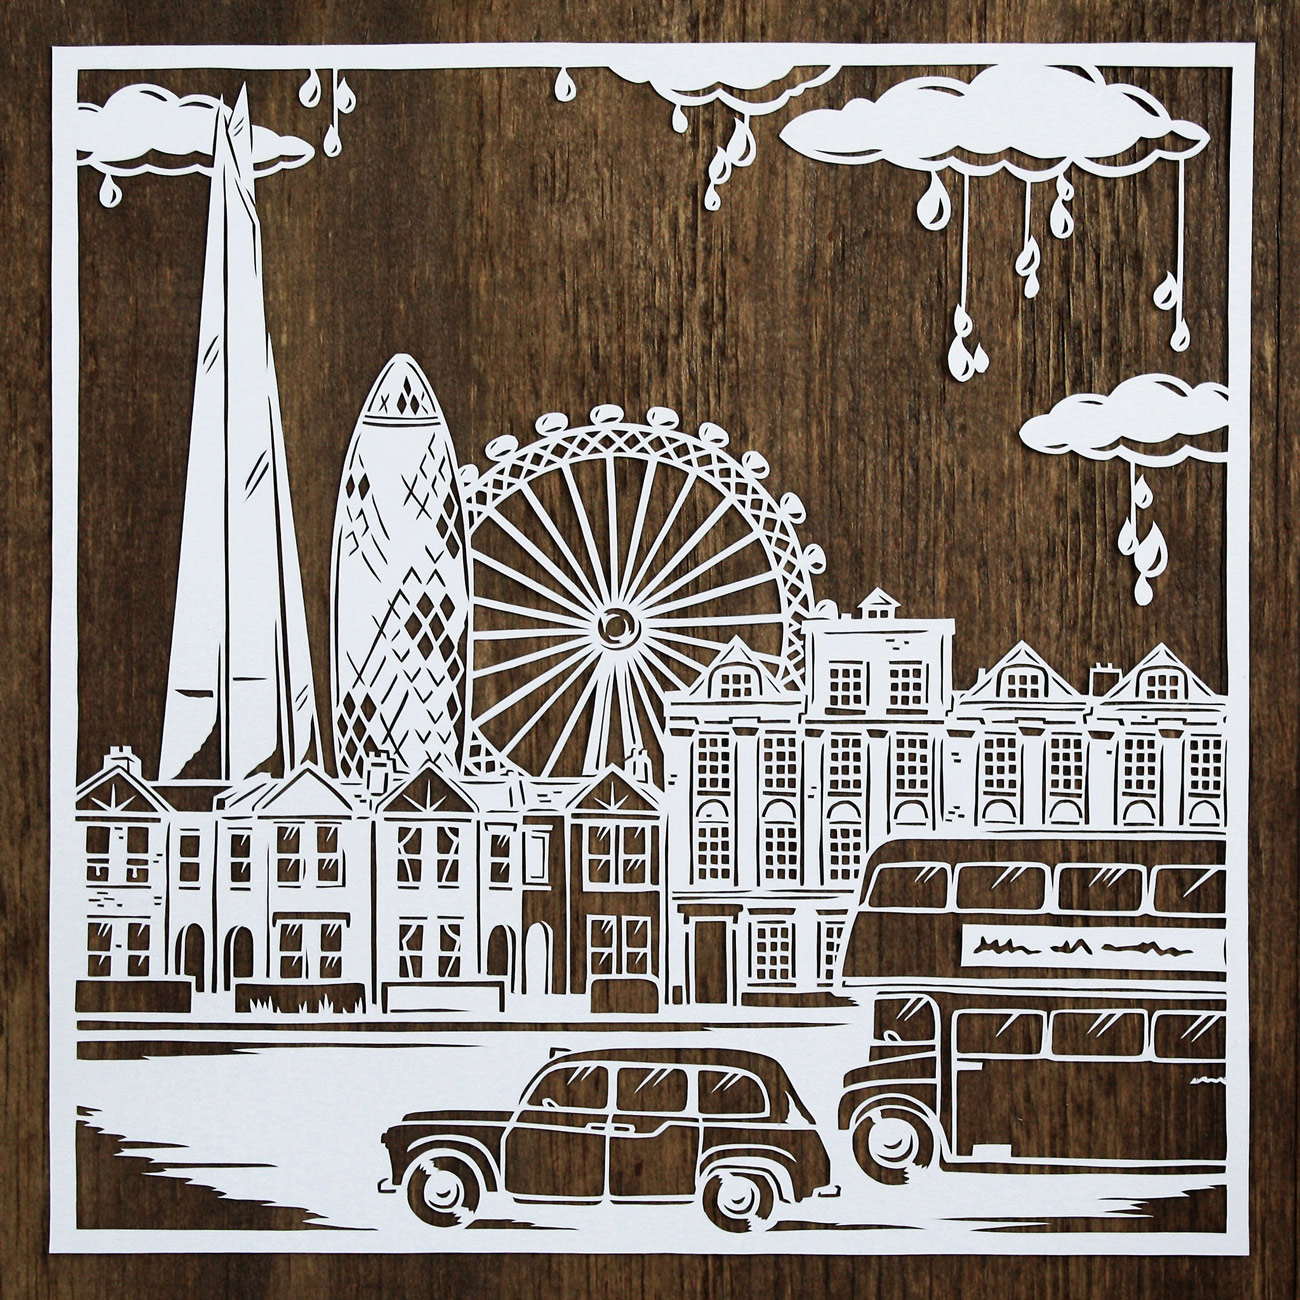 papercut-illustration-london-rain.jpg